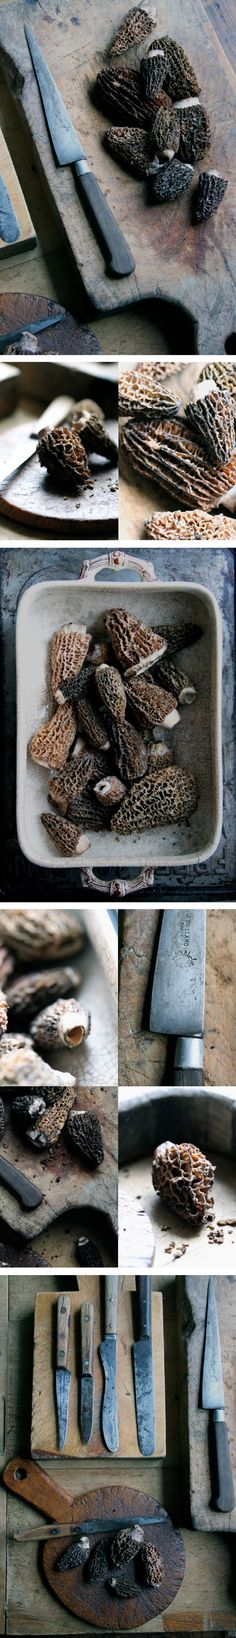 morels---these are my favorites, and the only mushrooms that I can definitely identify, gather and eat with no hesitation.